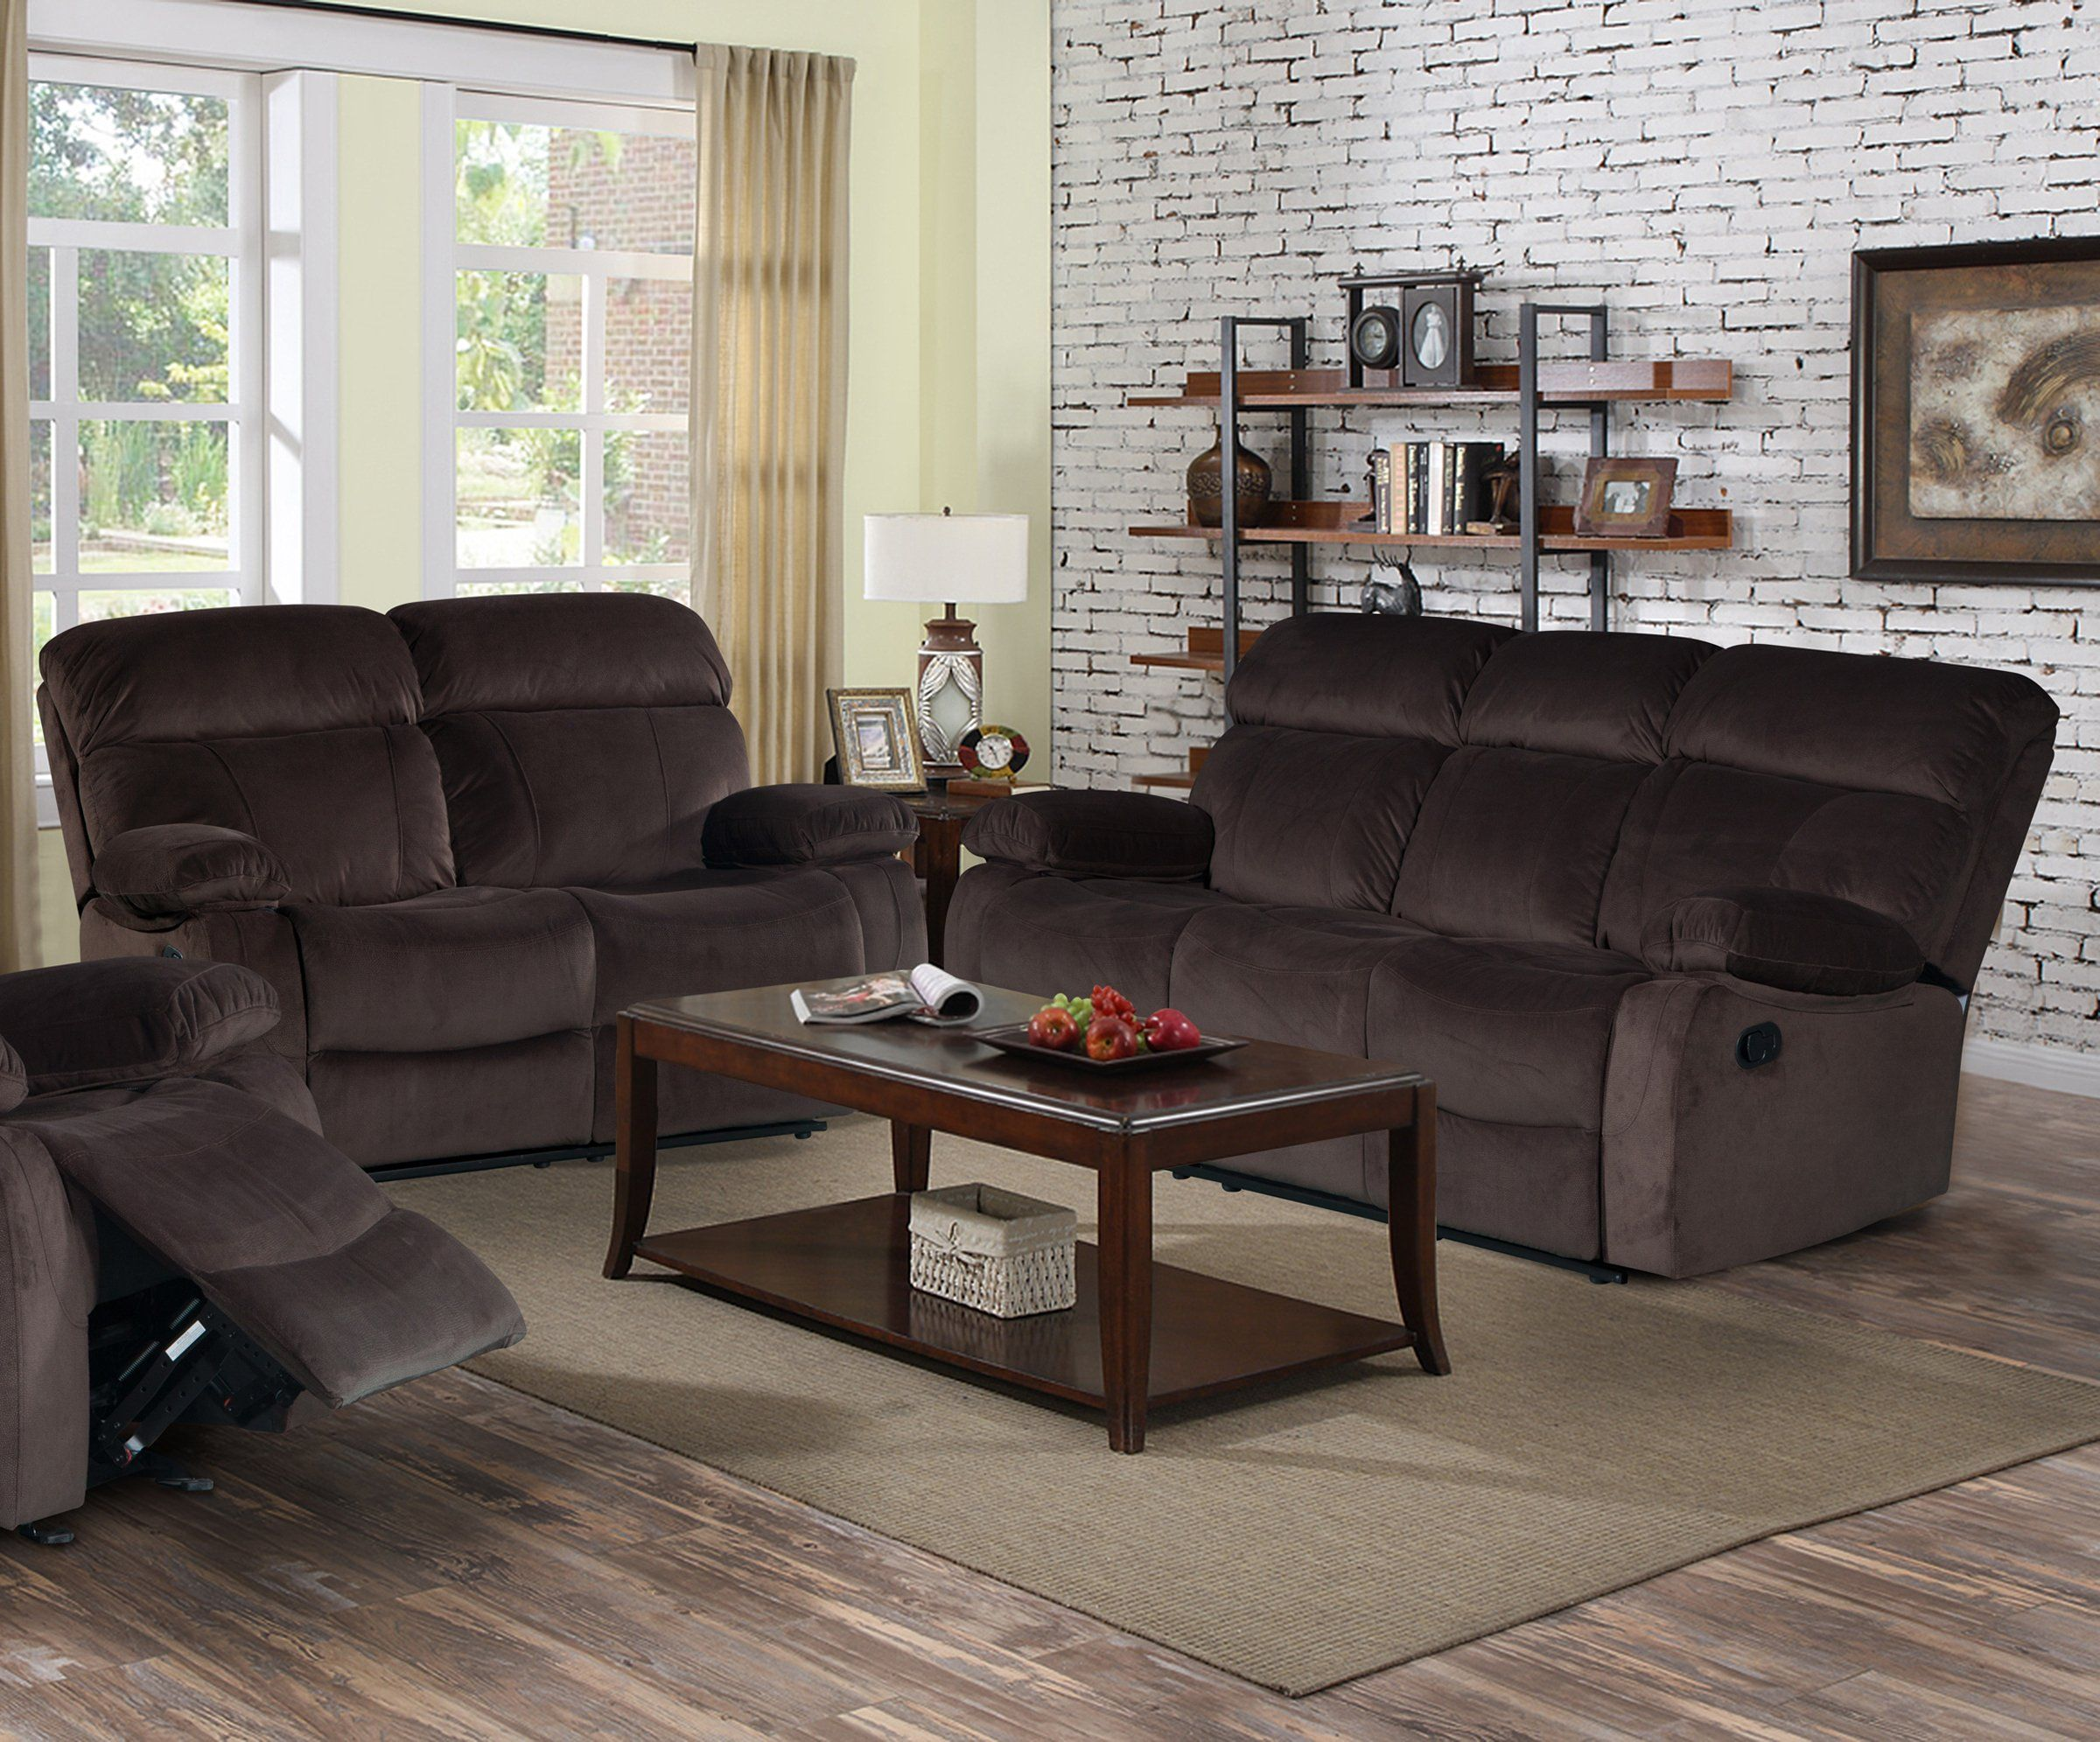 Chocolate Corduroy Sofa Izabella Dark Chocolate Corduroy 2 Pc Reclining Sofa And Loveseat